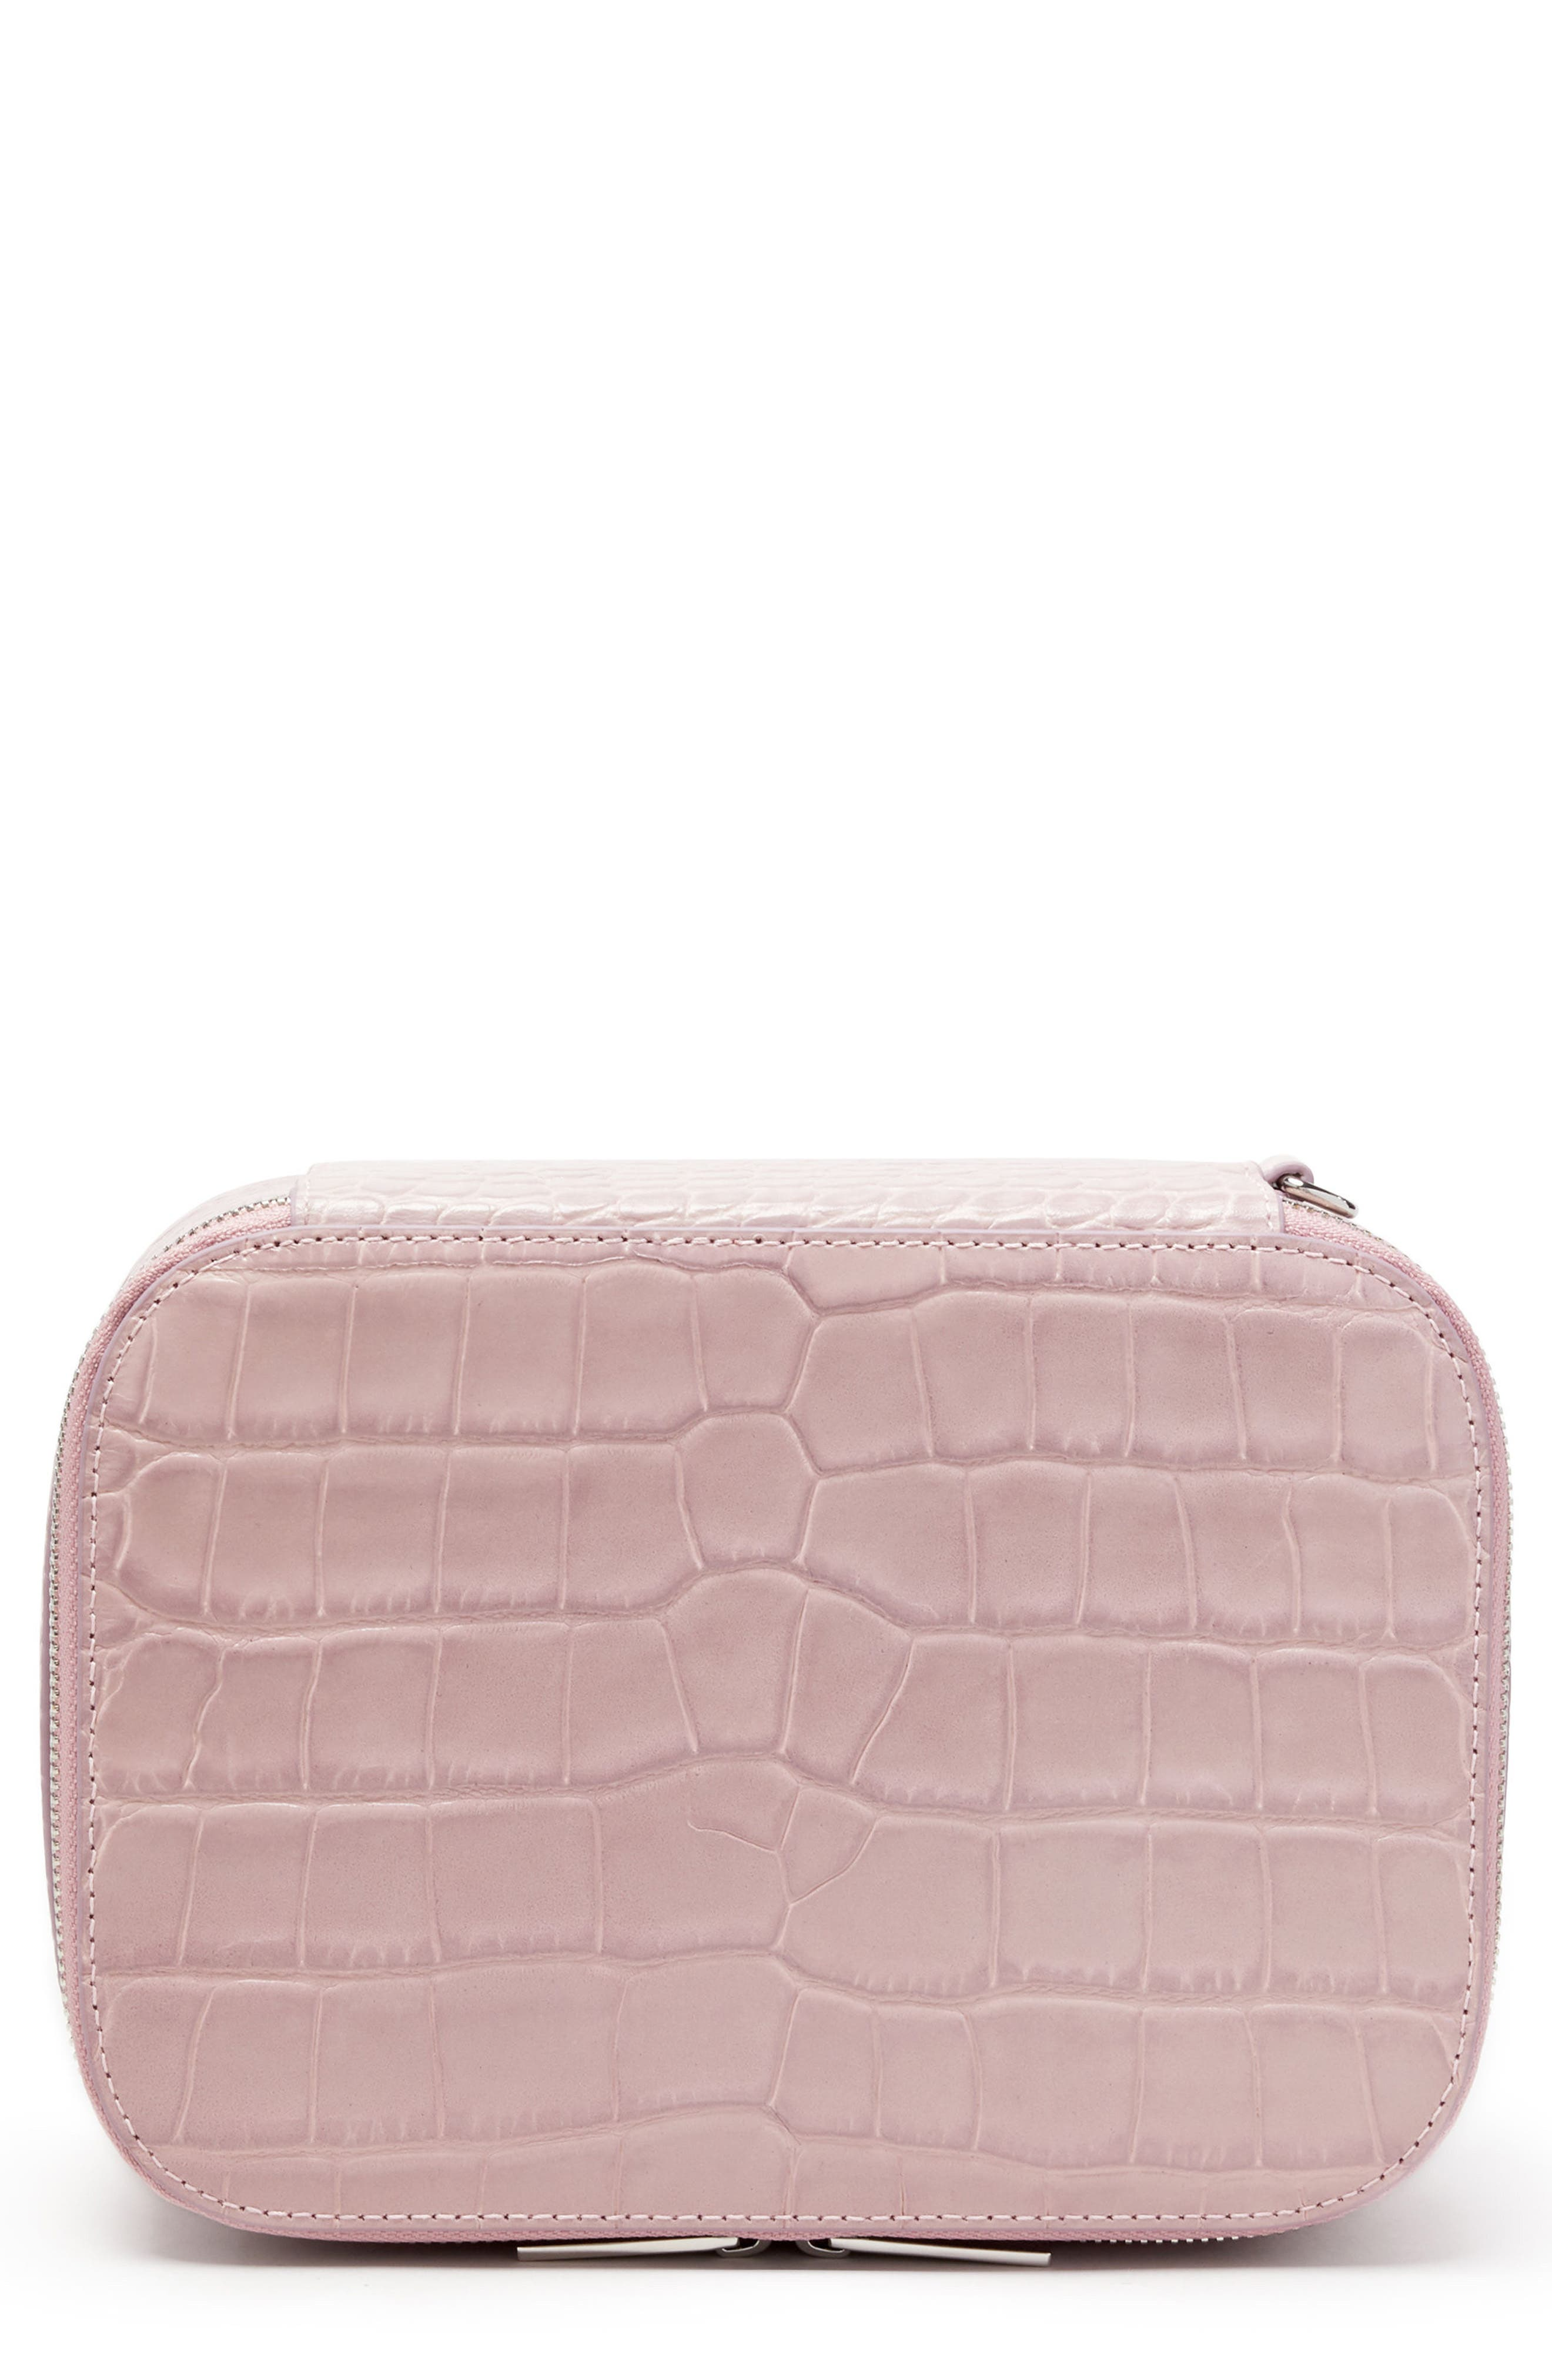 Croc Embossed Bigger Makeup Bag,                             Main thumbnail 1, color,                             Mauve